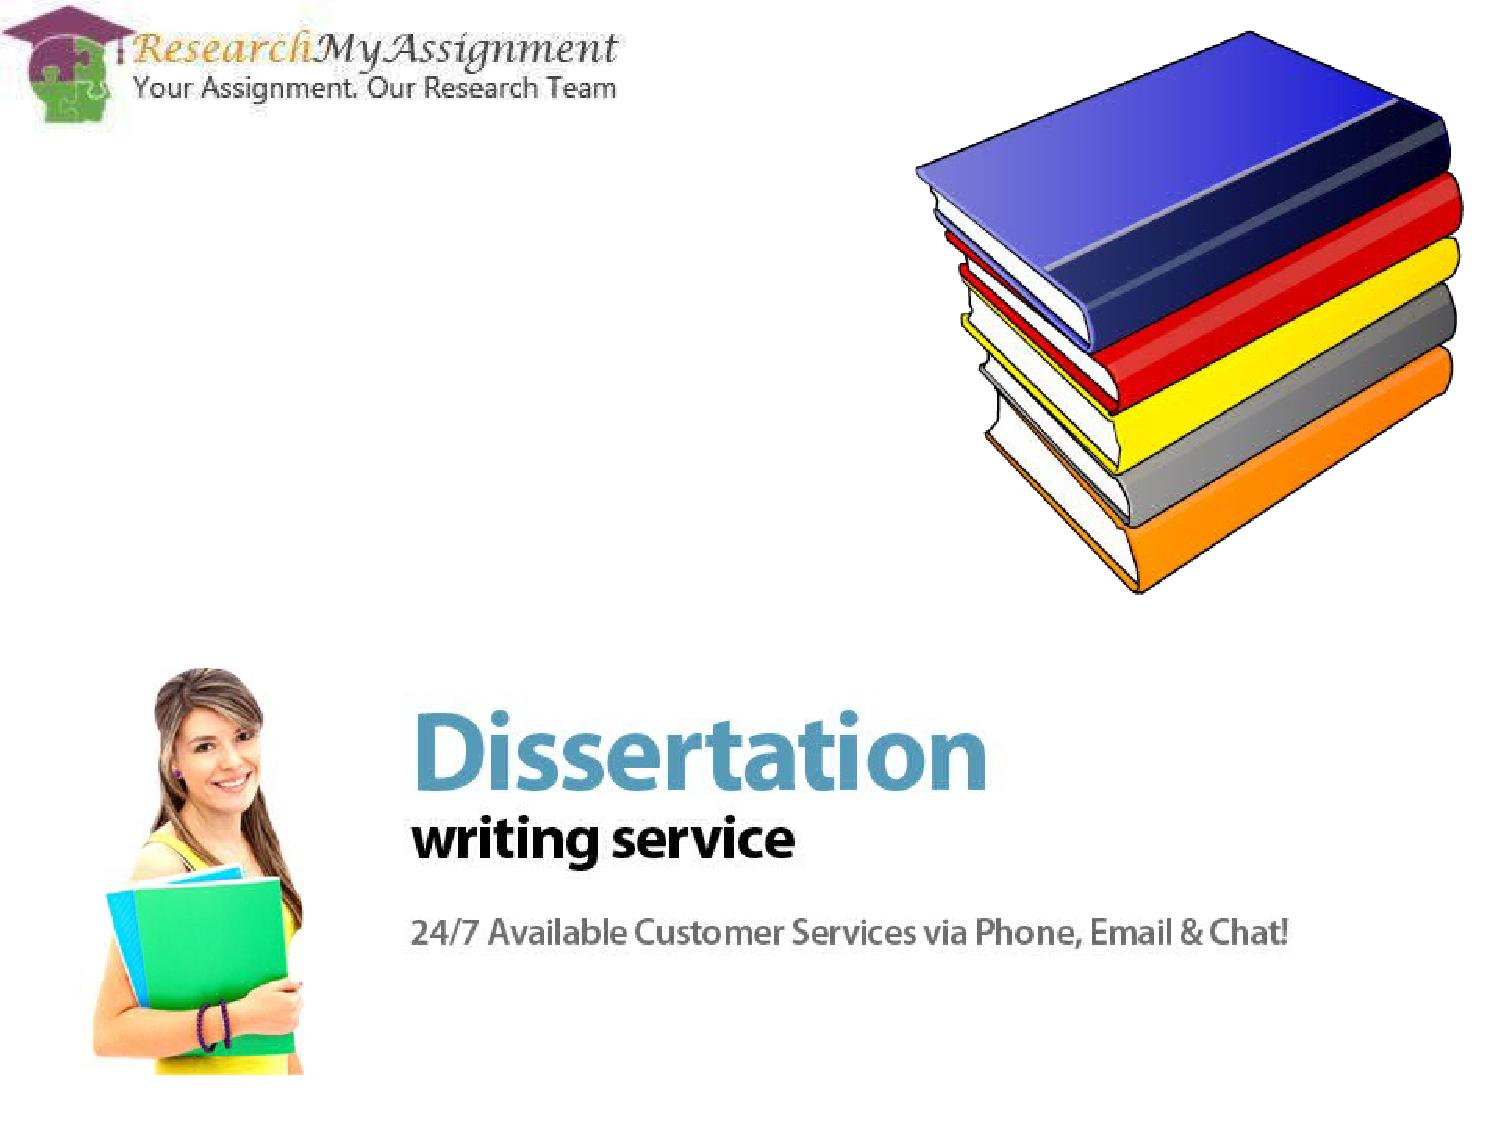 revising your dissertation edited by beth luey The paperback of the revising your dissertation: advice from leading editors by beth luey at barnes & noble free shipping on $25 or more.